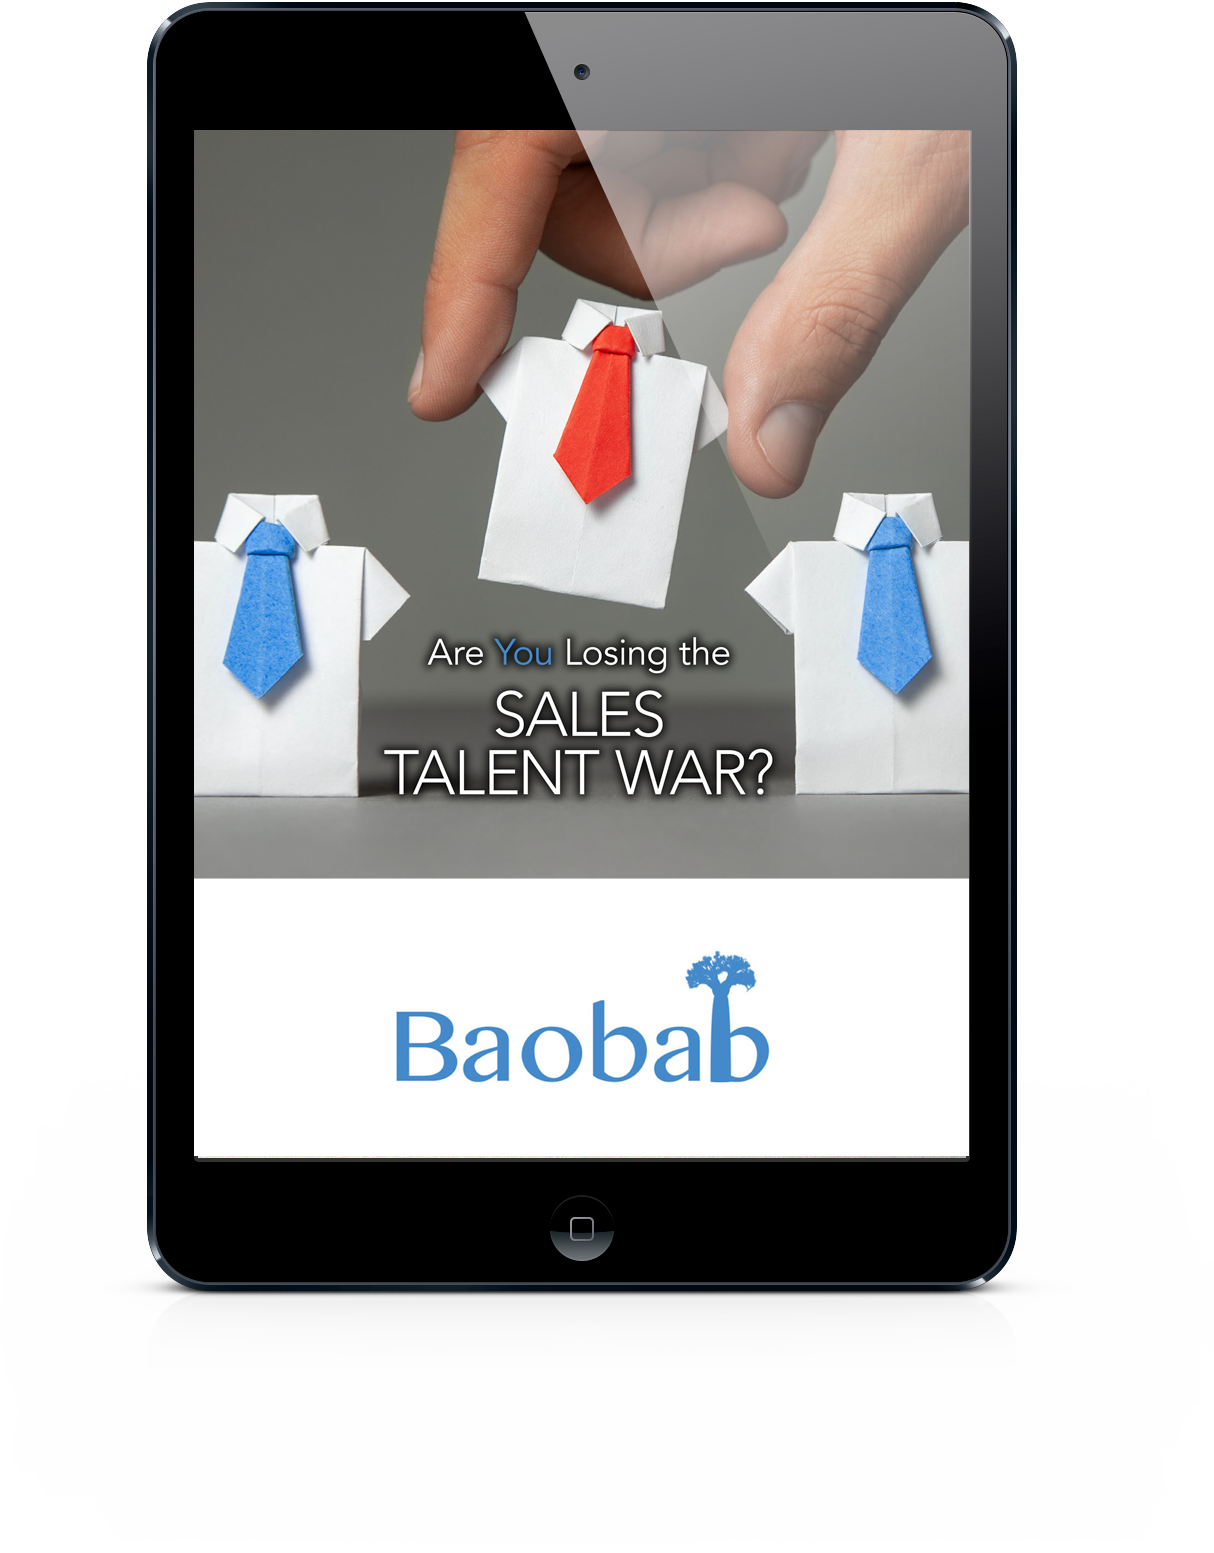 Are you losing the Sales Talent War? An example eBook from Baobab